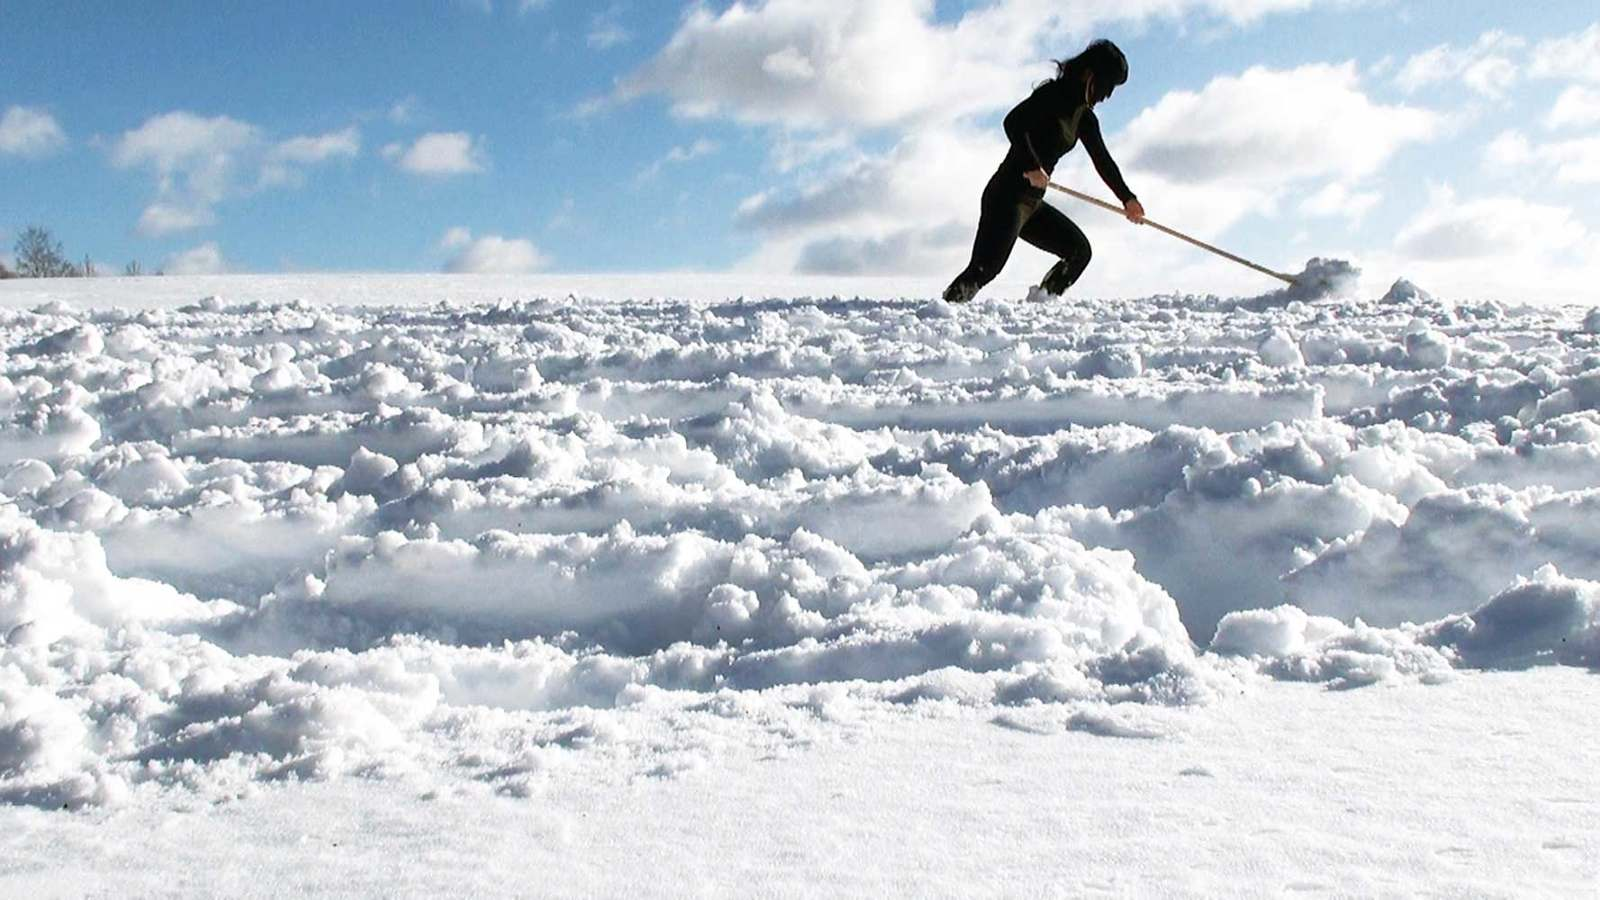 On a snowy field on a sunny day, a woman dressed in black is pushing snow with a broom.